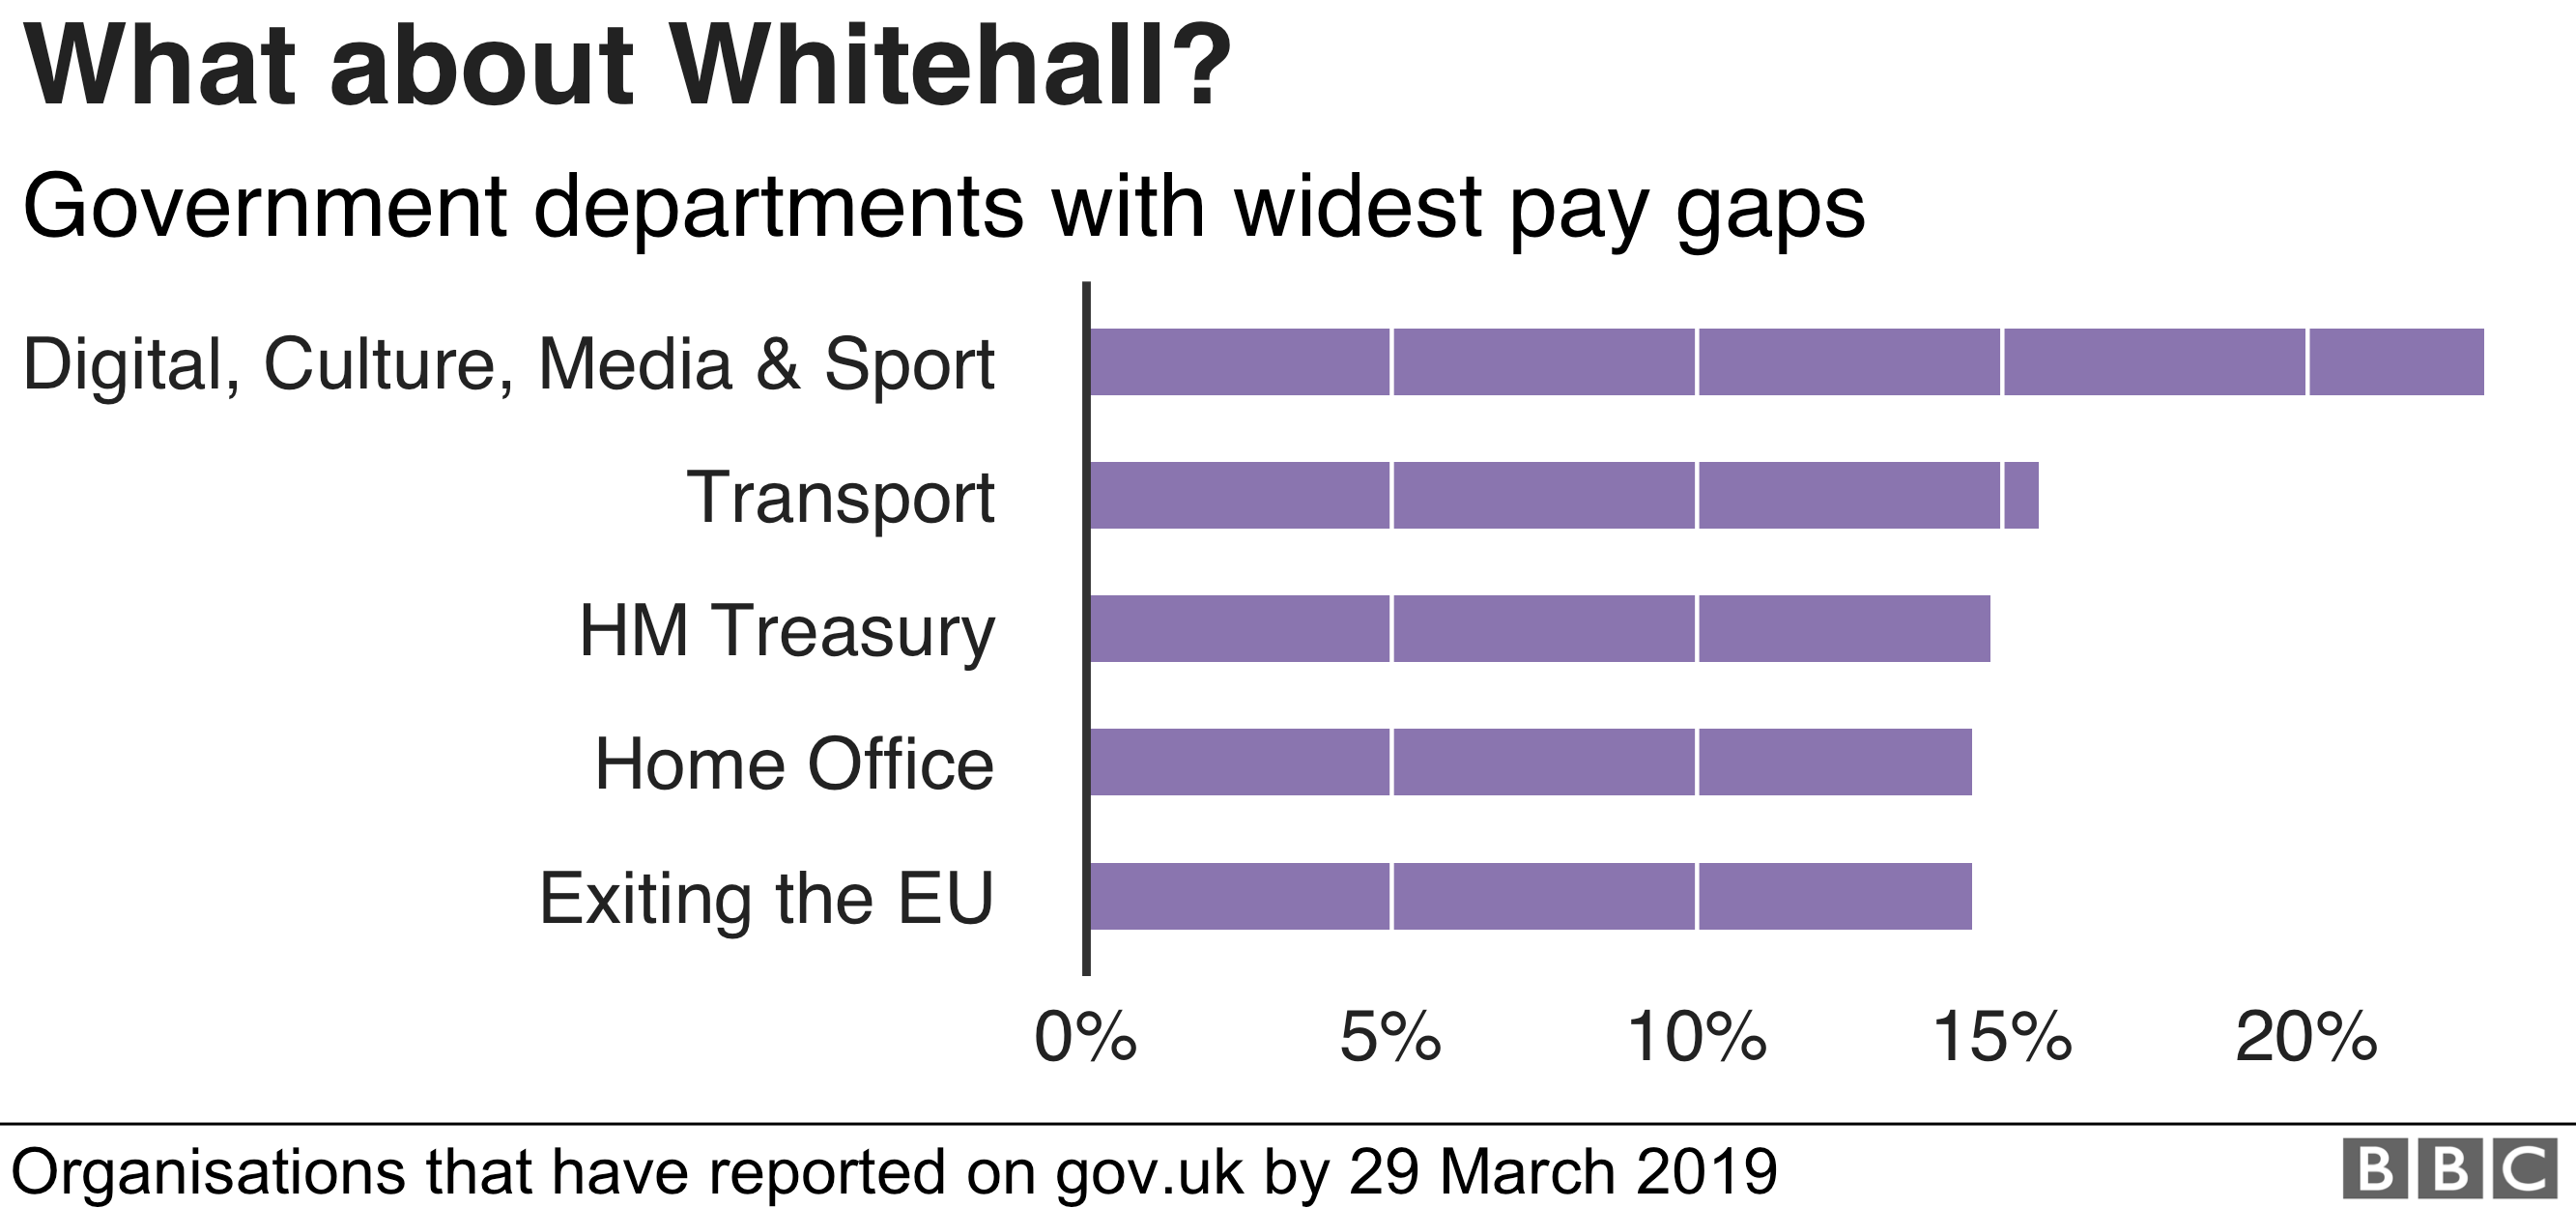 Chart showing the government departments with the widest pay gaps